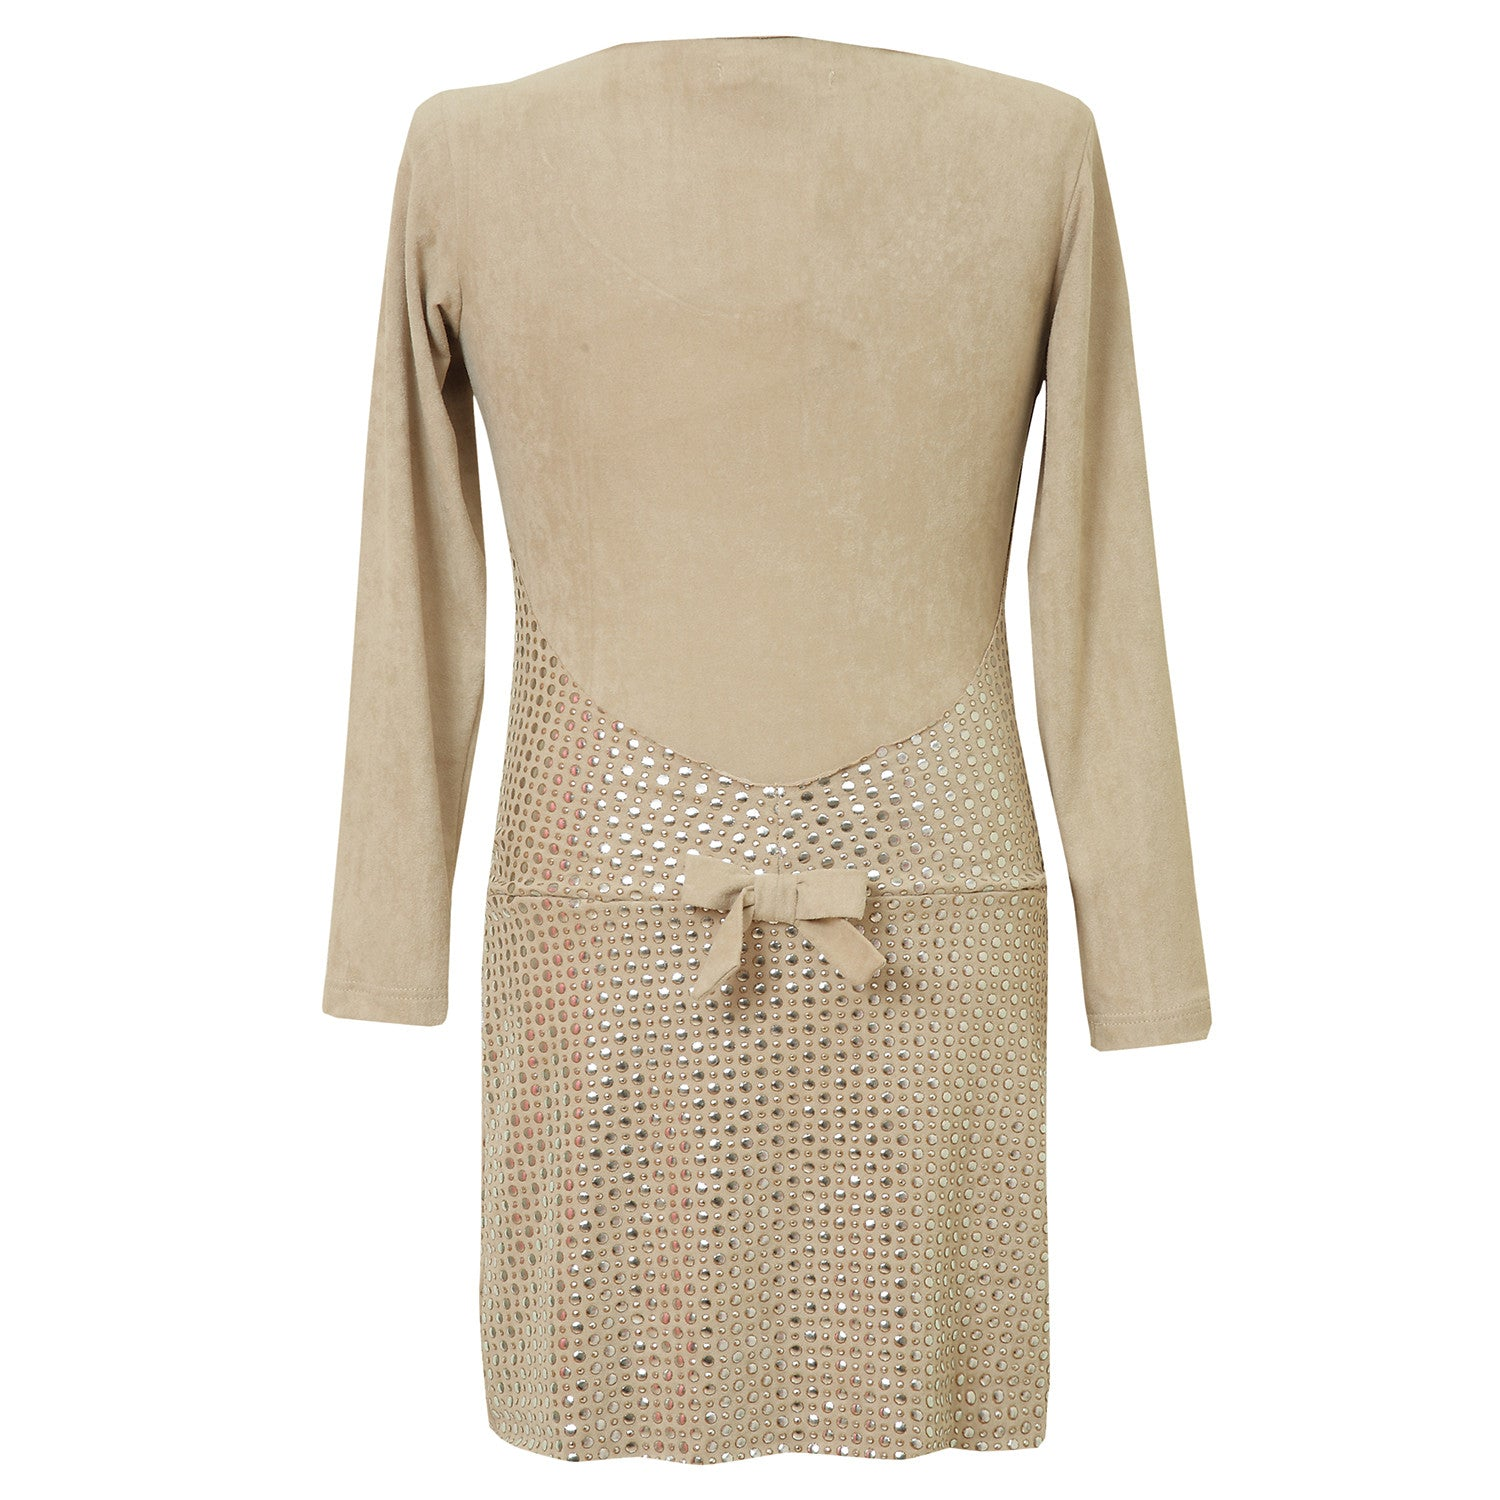 Girls Trendy Long Sleeve Dress in Beige